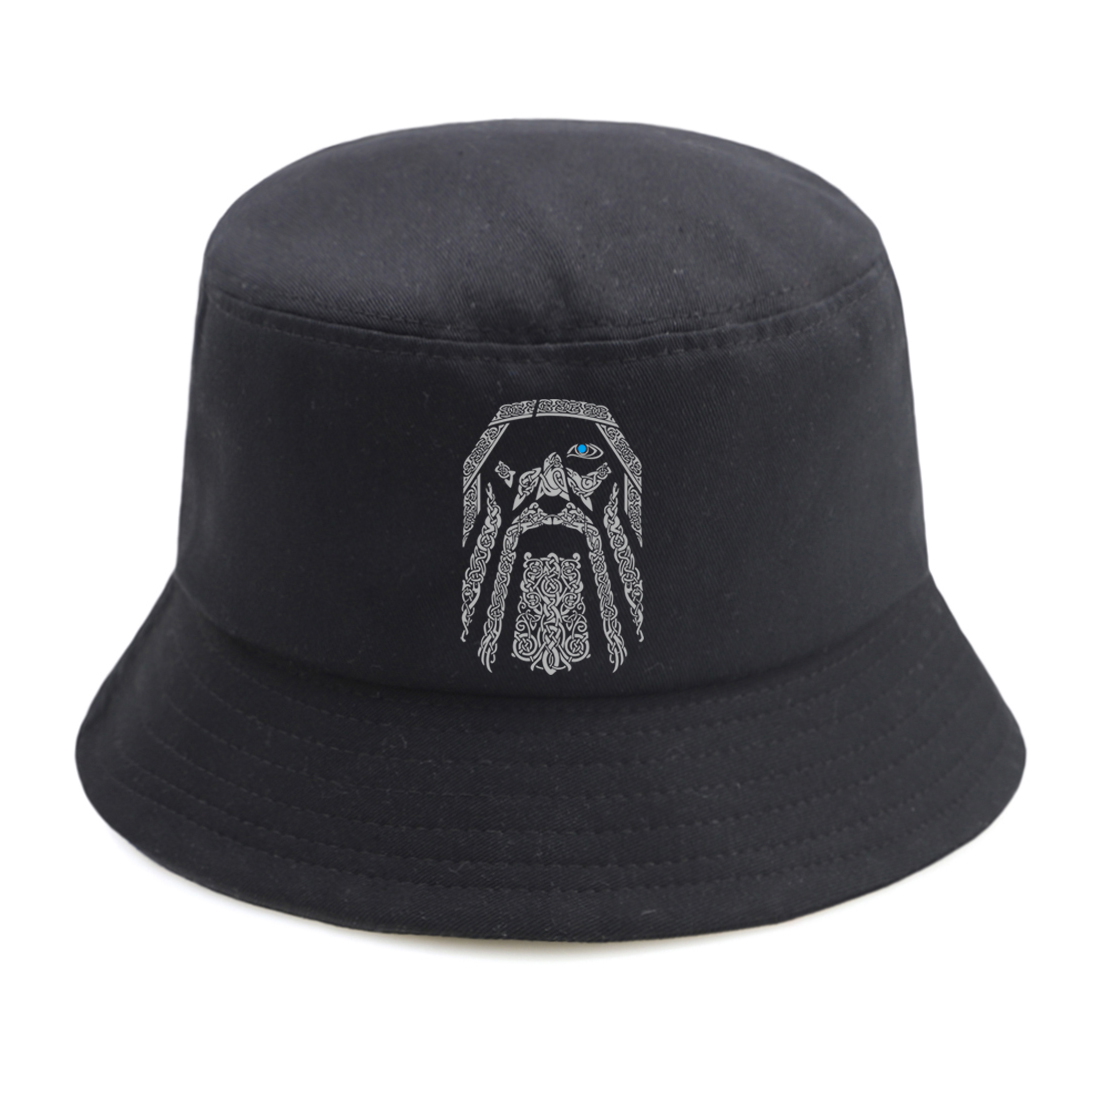 The Vkings Sunscreen Mans Bucket Hat Outdoor Ladies Fishing Hats Summer Hip Hop Beach Sun Caps Streetwear Black Bob Chapeau image